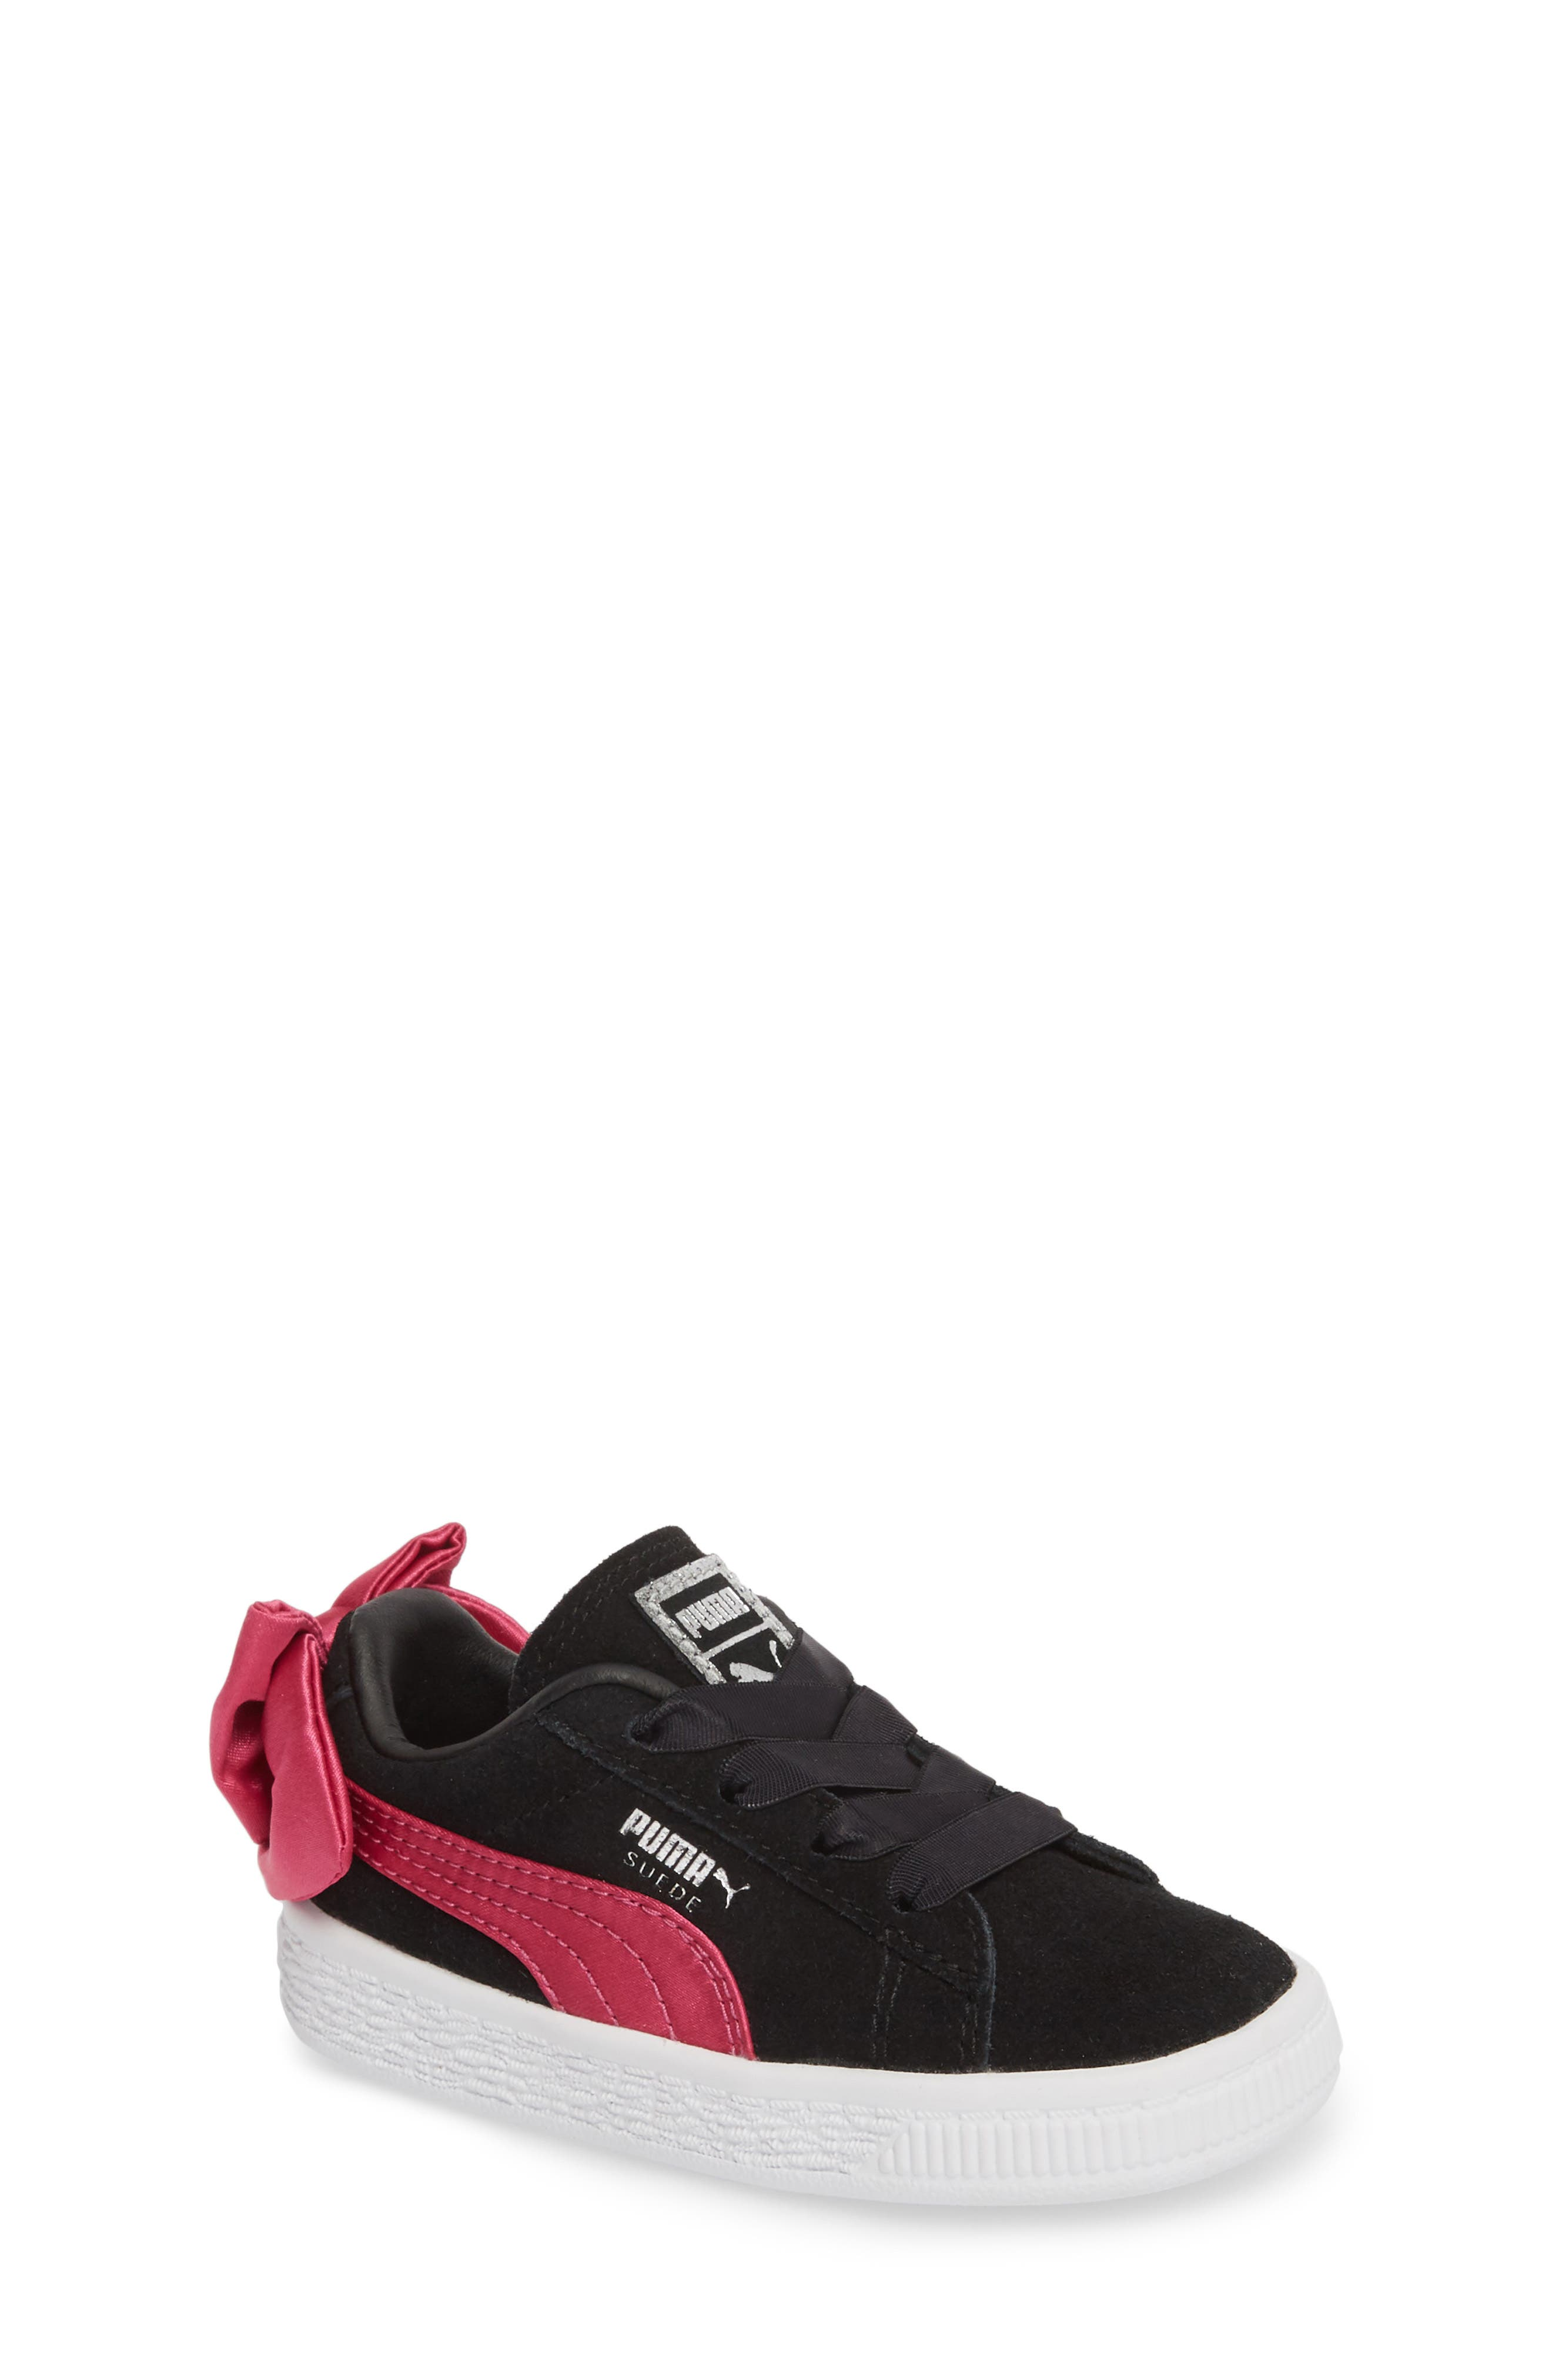 PUMA Bow Sneaker, Main, color, 001